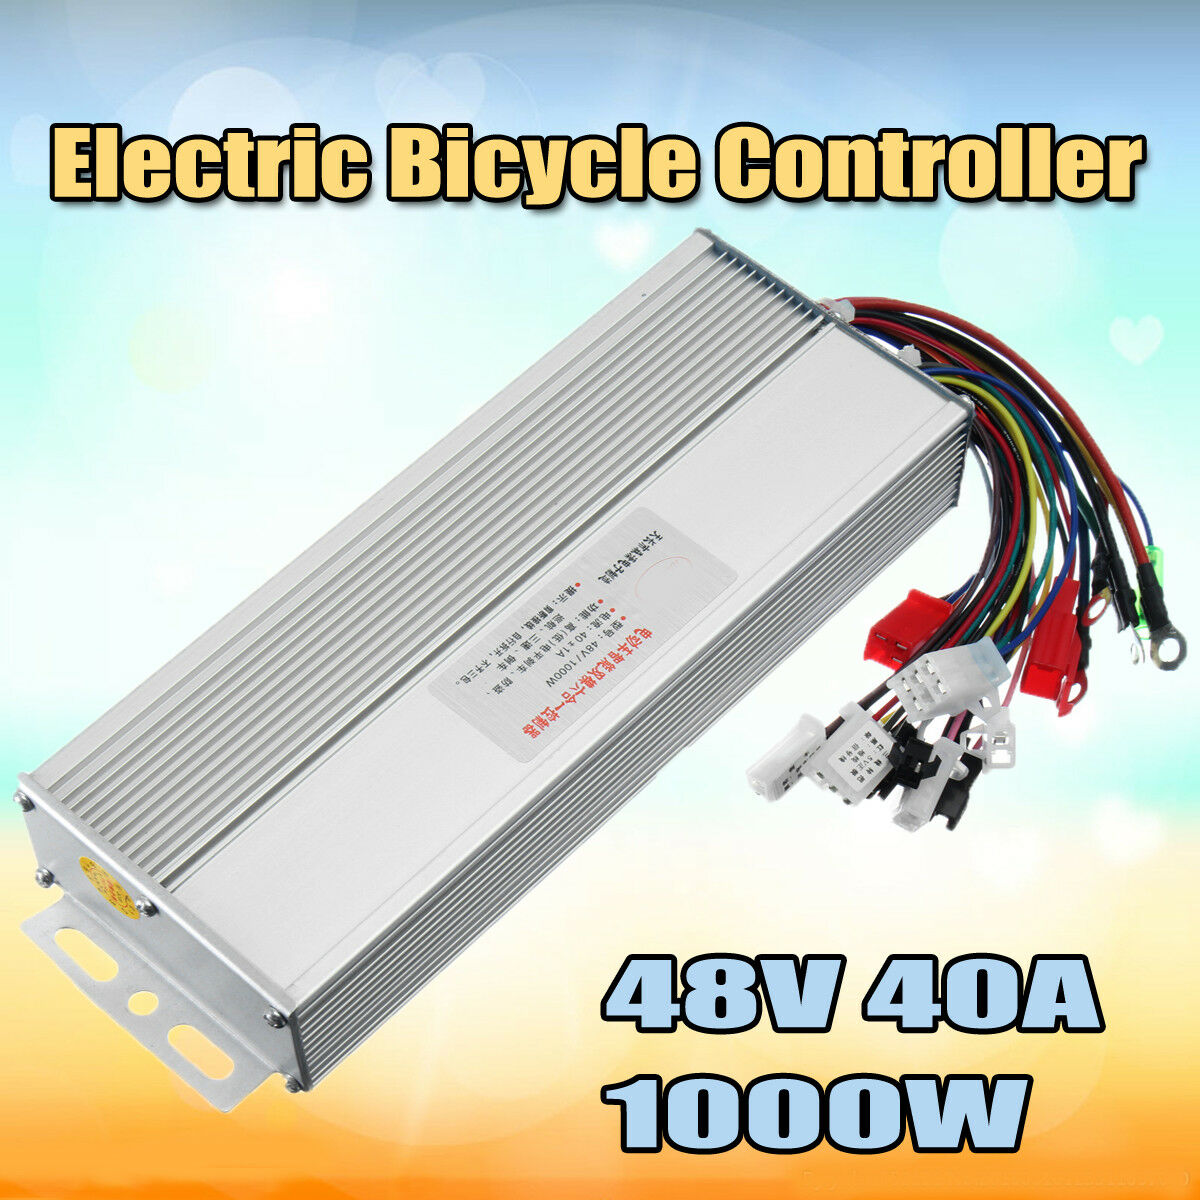 48v 1000w Electric Bicycle Brushless Speed Motor Controller For E Bldc From Reliable Bike Scooter 1 Of 8only 3 Available